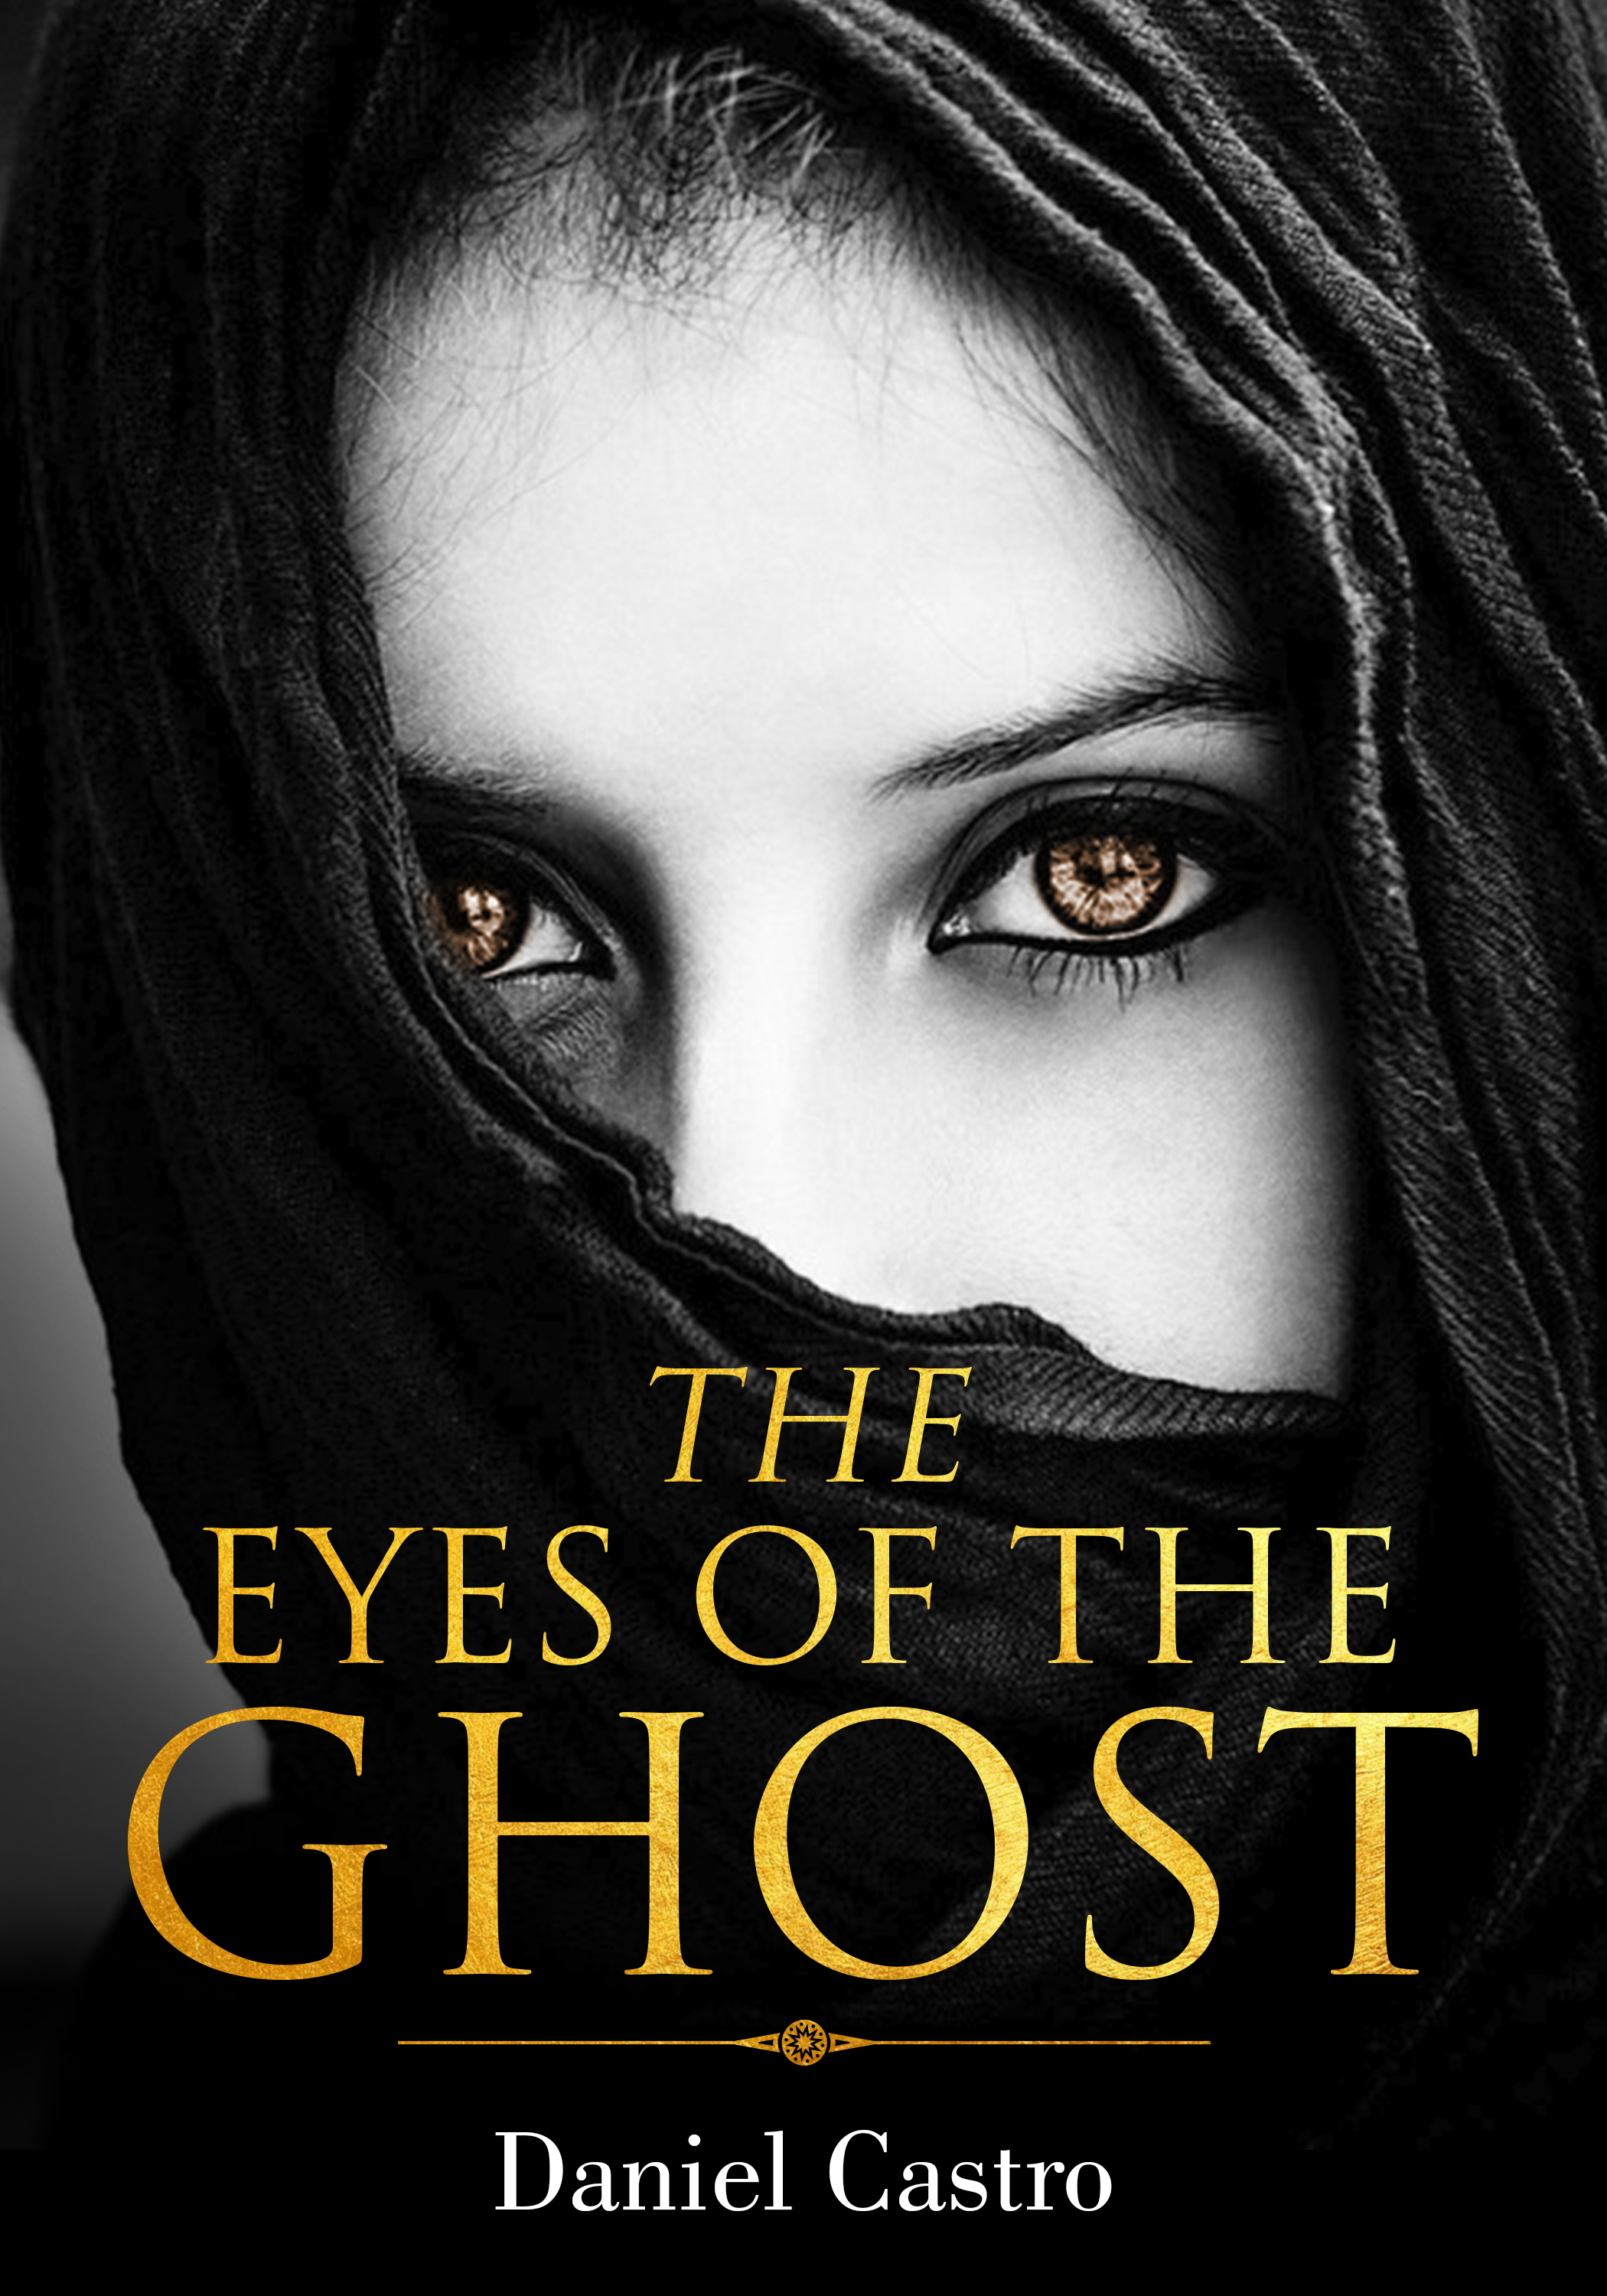 The eyes of the ghost